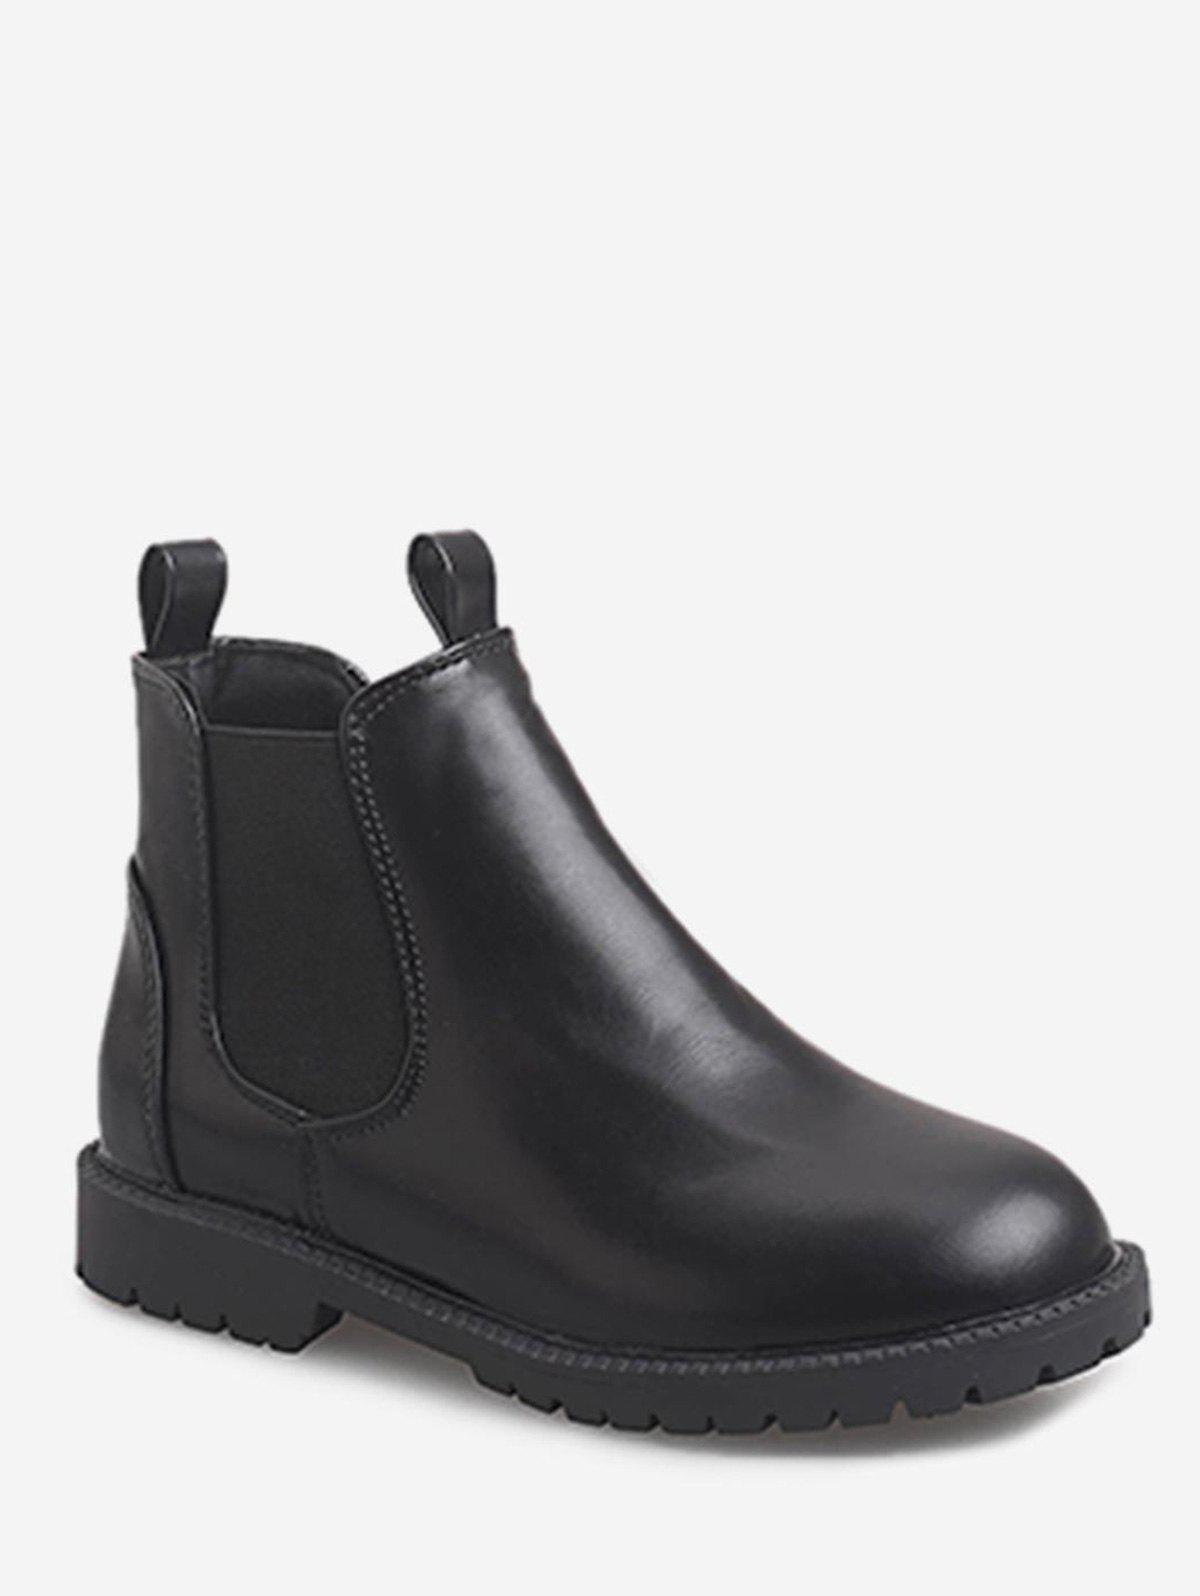 Best Round Toe PU Leather Chelsea Boots